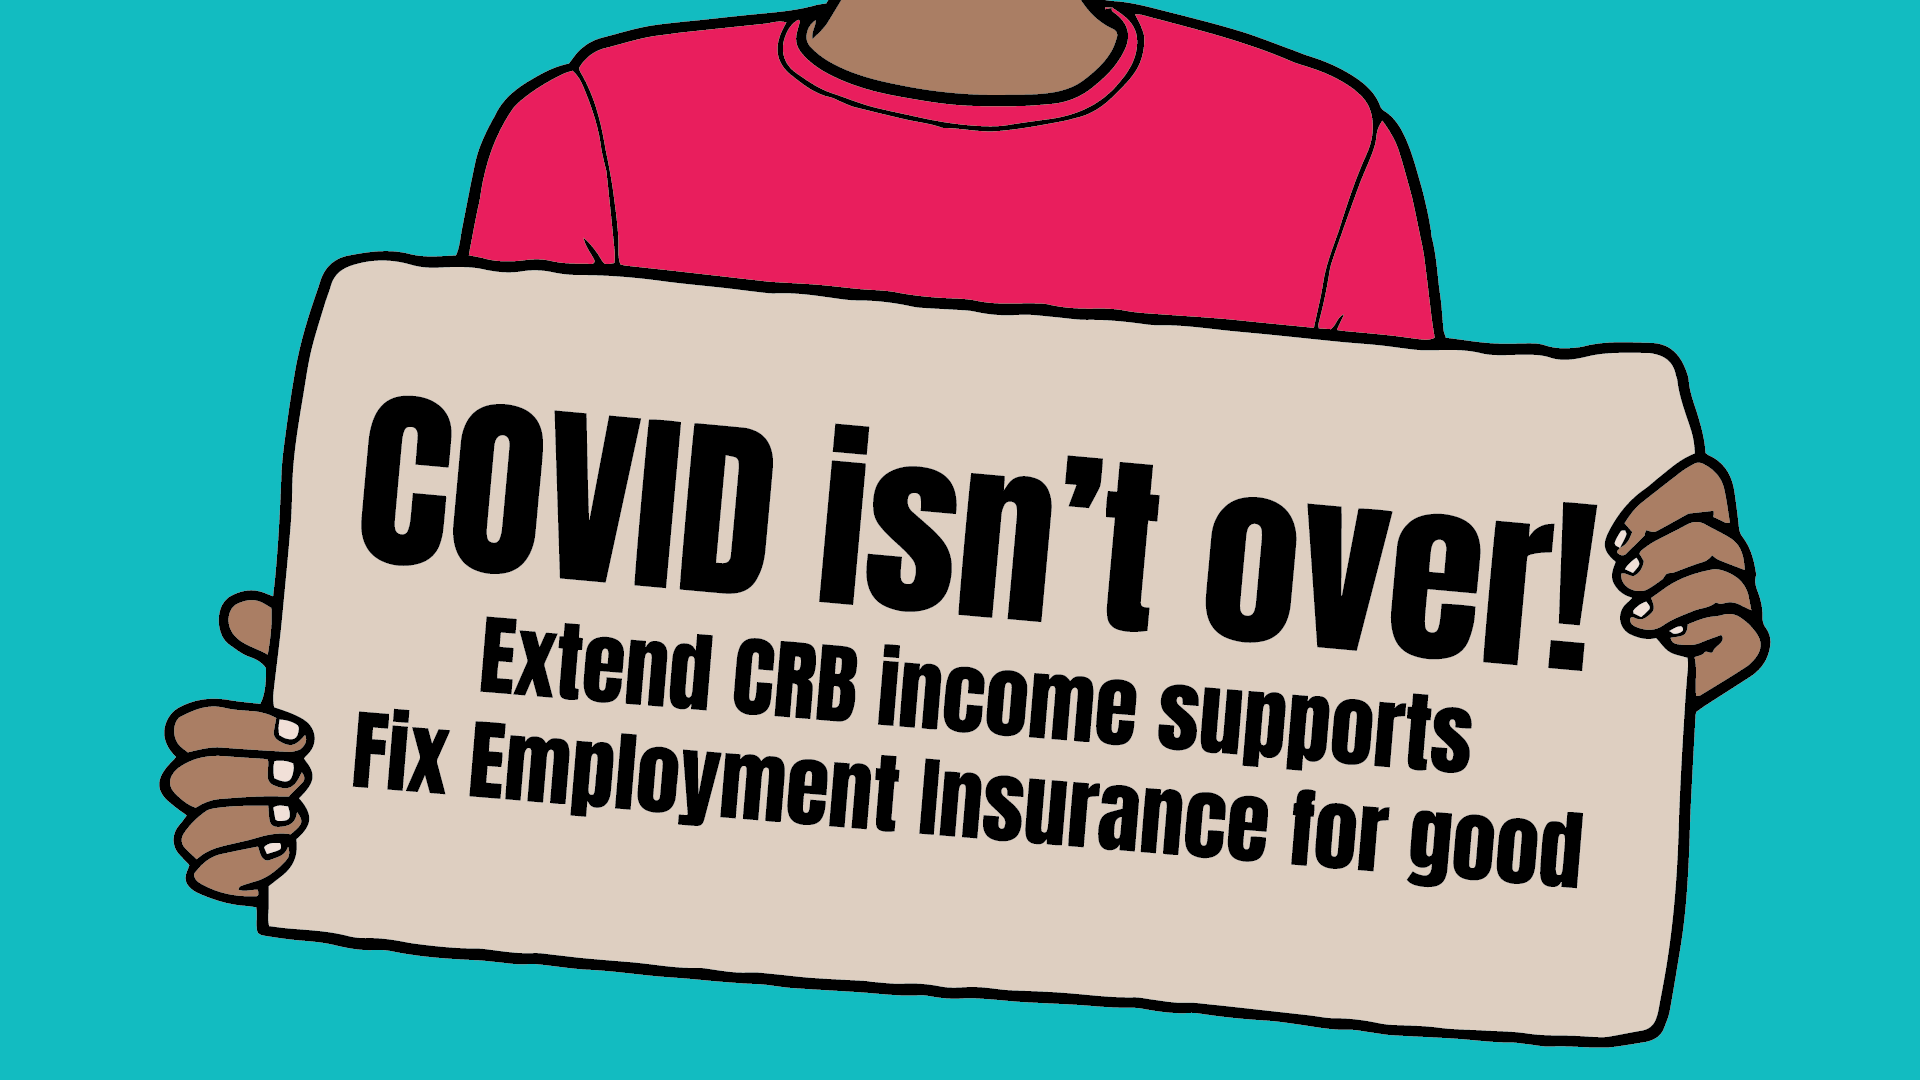 Text: COVID isn't over. Extend CRB income supports. Fix Employment insurance for good.